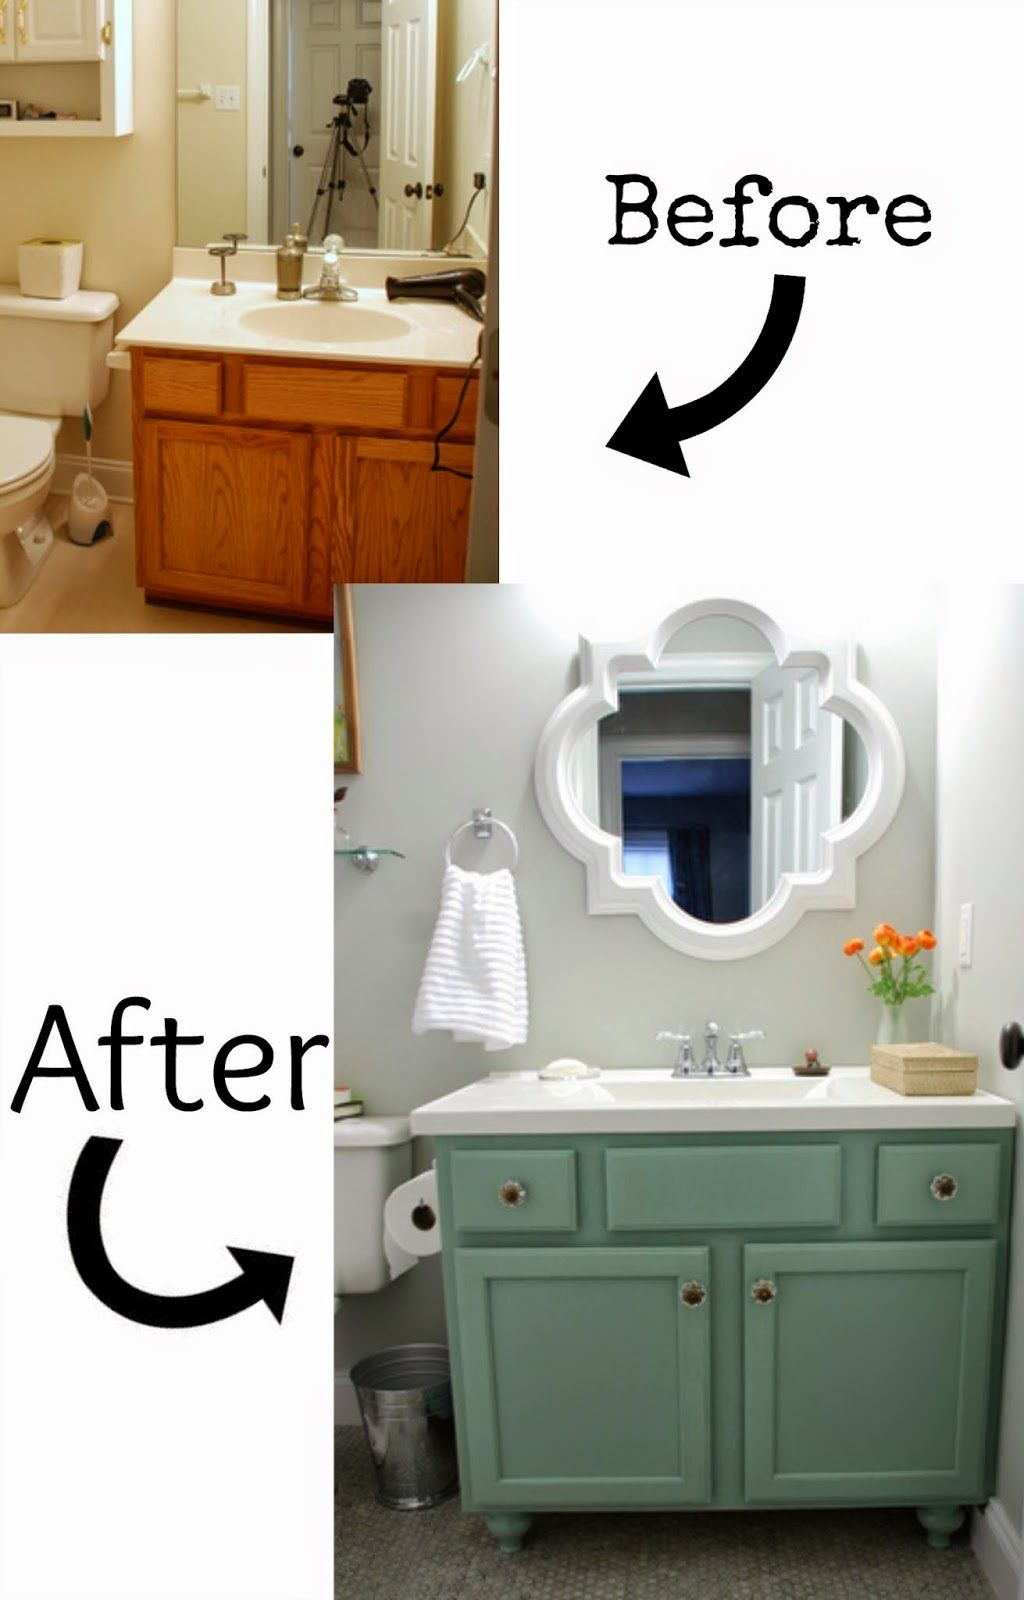 Ten genius storage ideas for the bathroom 8 | future house ideas ...